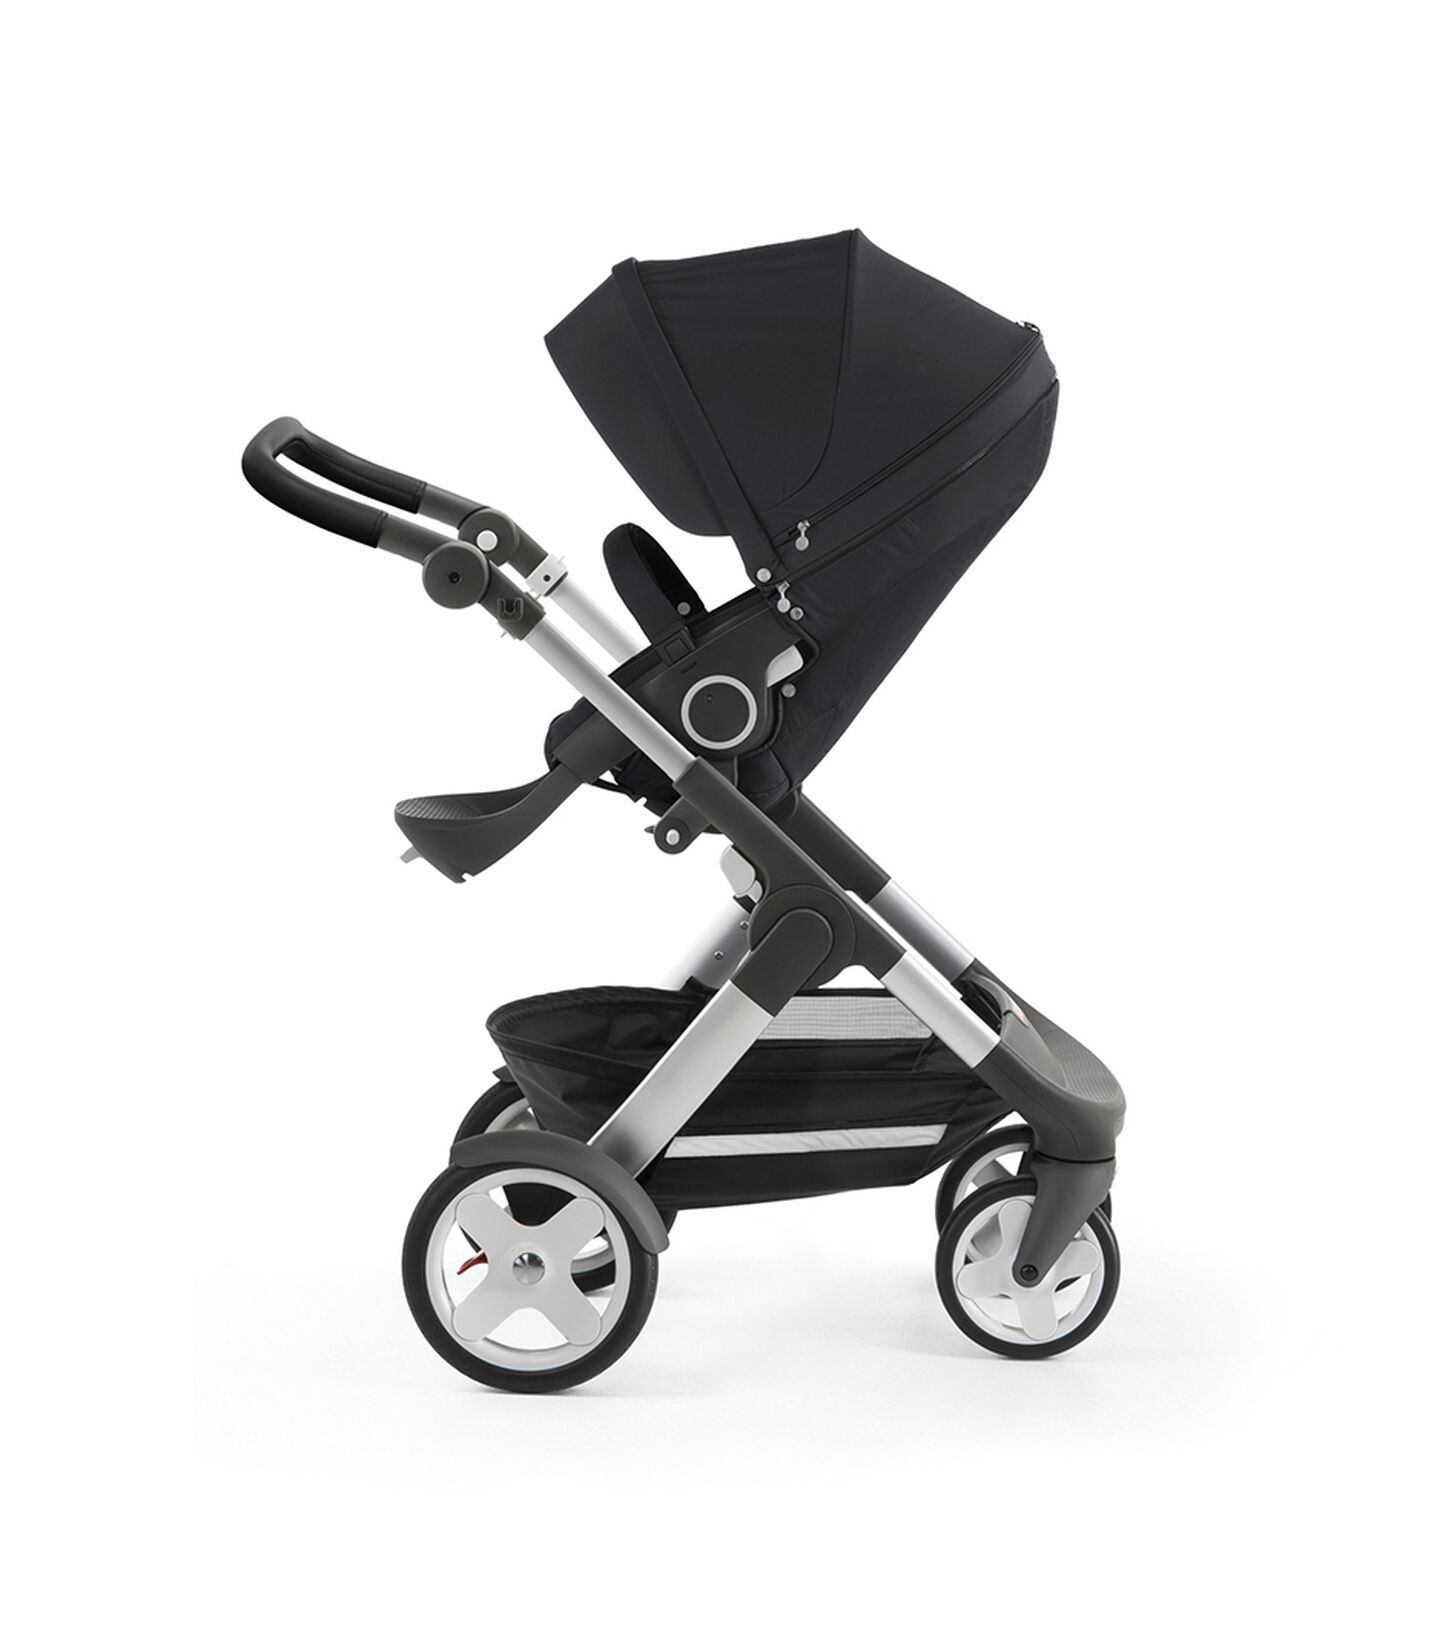 Stokke® Trailz™ with silver chassis and Stokke® Stroller Seat, Black Melange. Classic Wheels. view 2